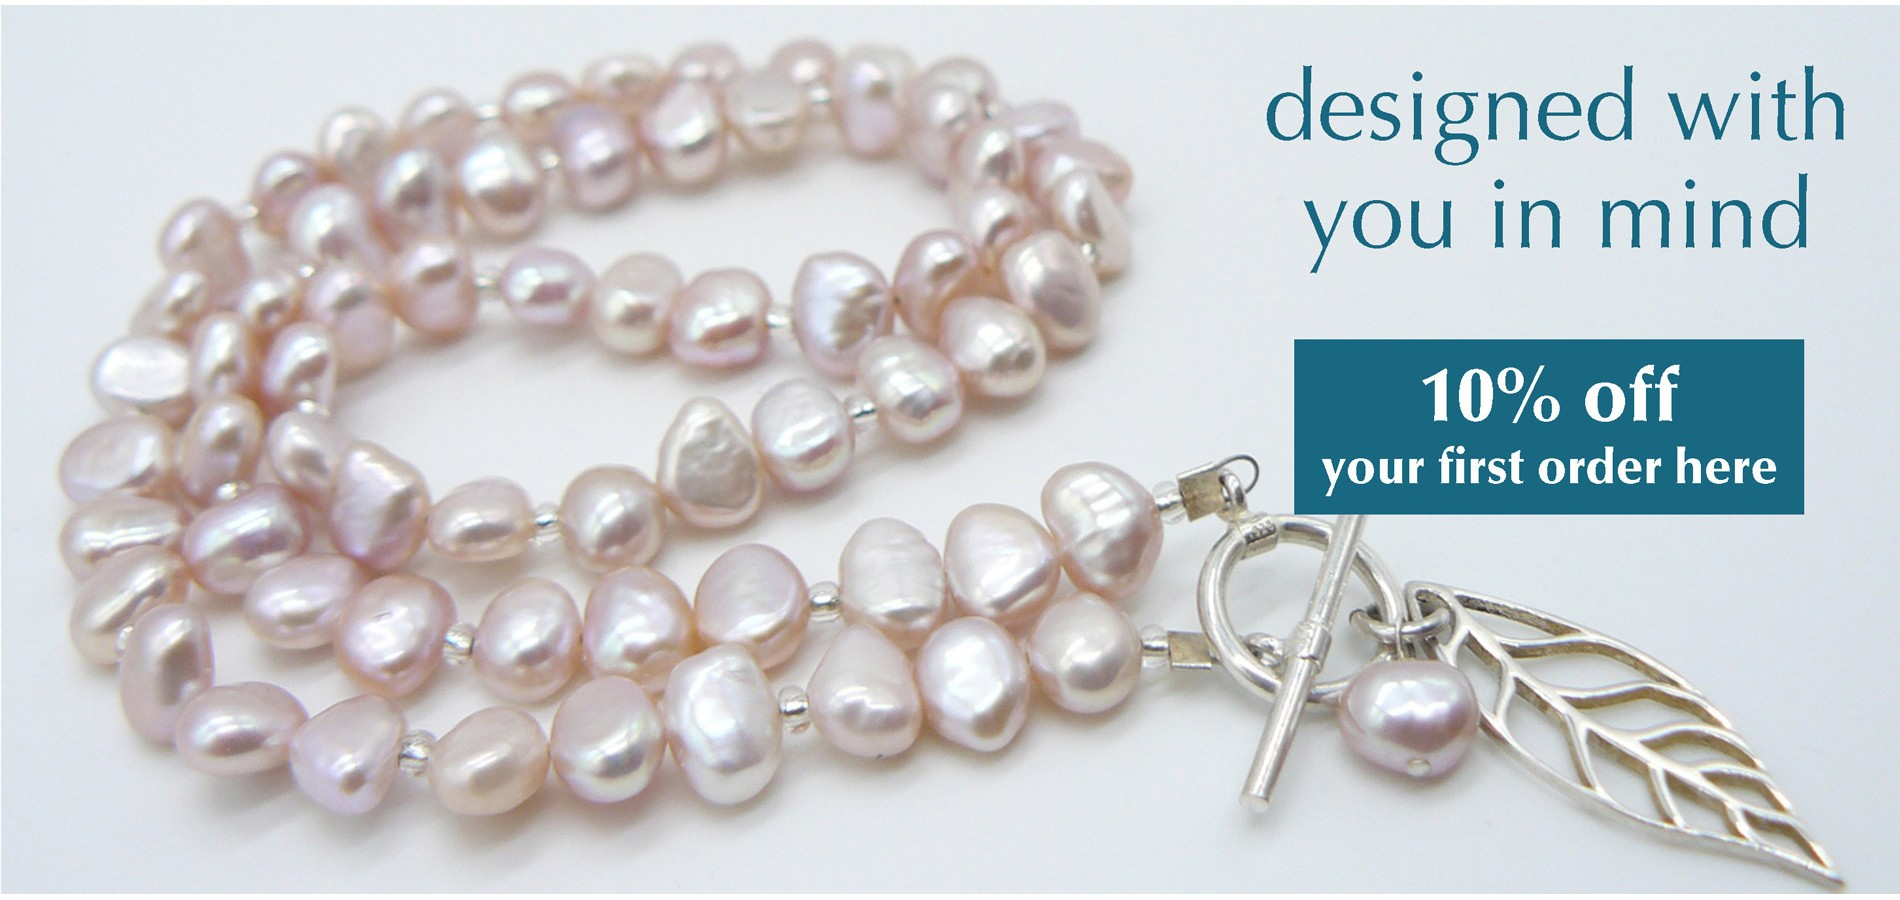 designed with you in mind